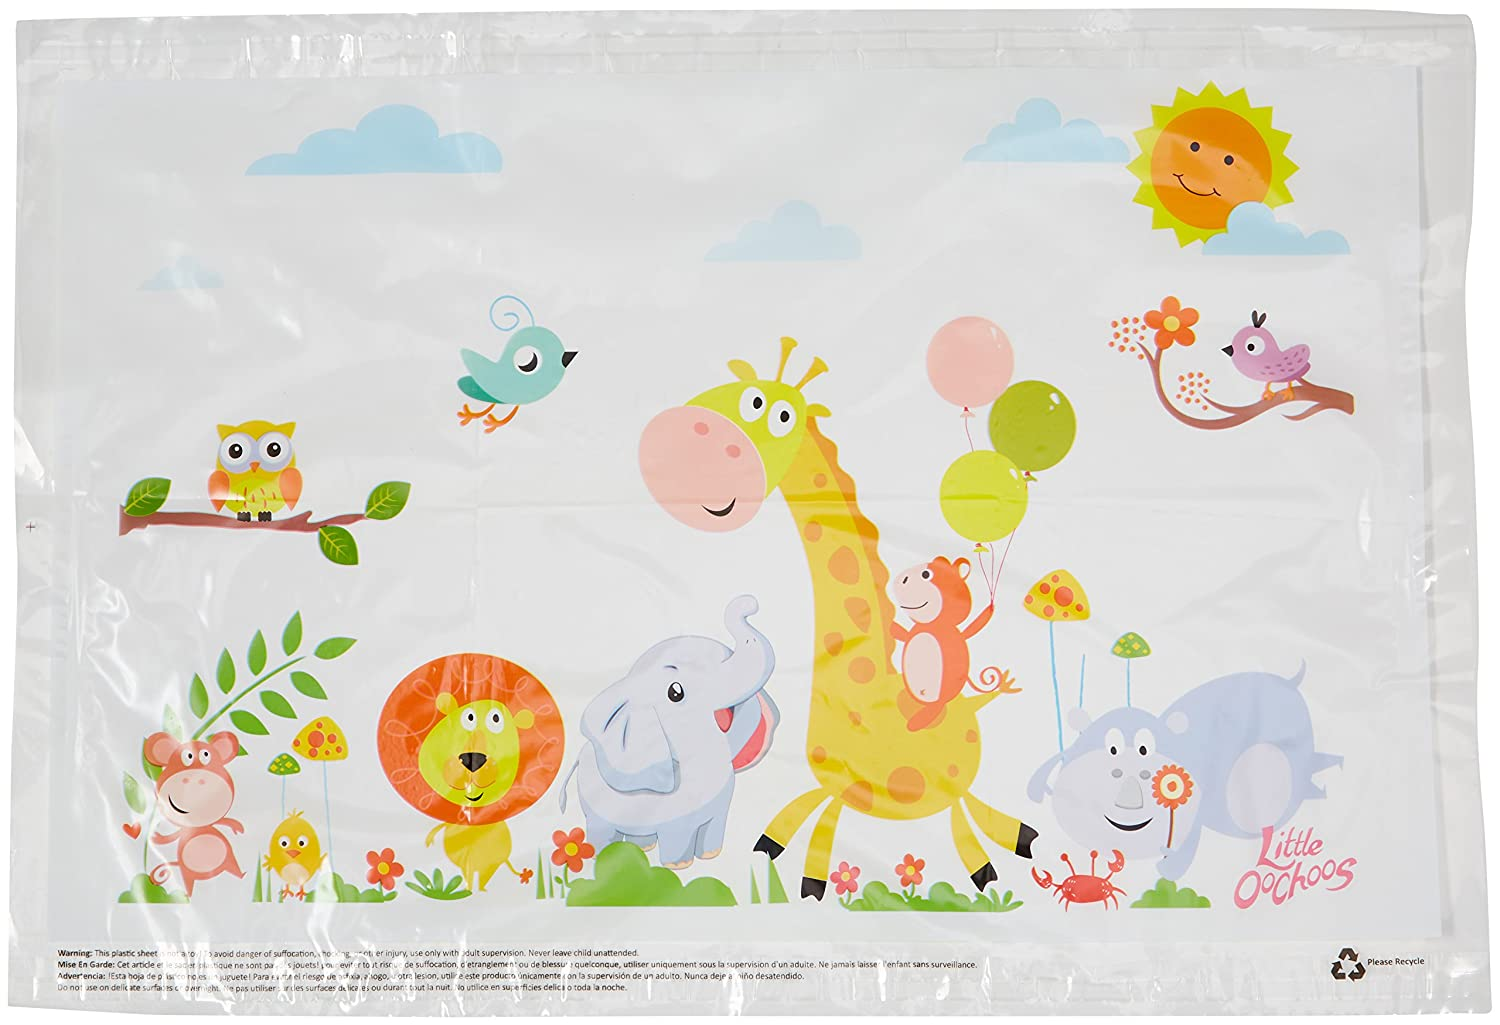 Safari Disposable Placemats for Table Top 60 Mats for Children Kids Toddlers Baby perfect to use as Restaurants Place mats BPA Free Eco Friendly Sticks to Table Avoid Germs Fun Designs Keep Neat Now! Smart Creations Pro